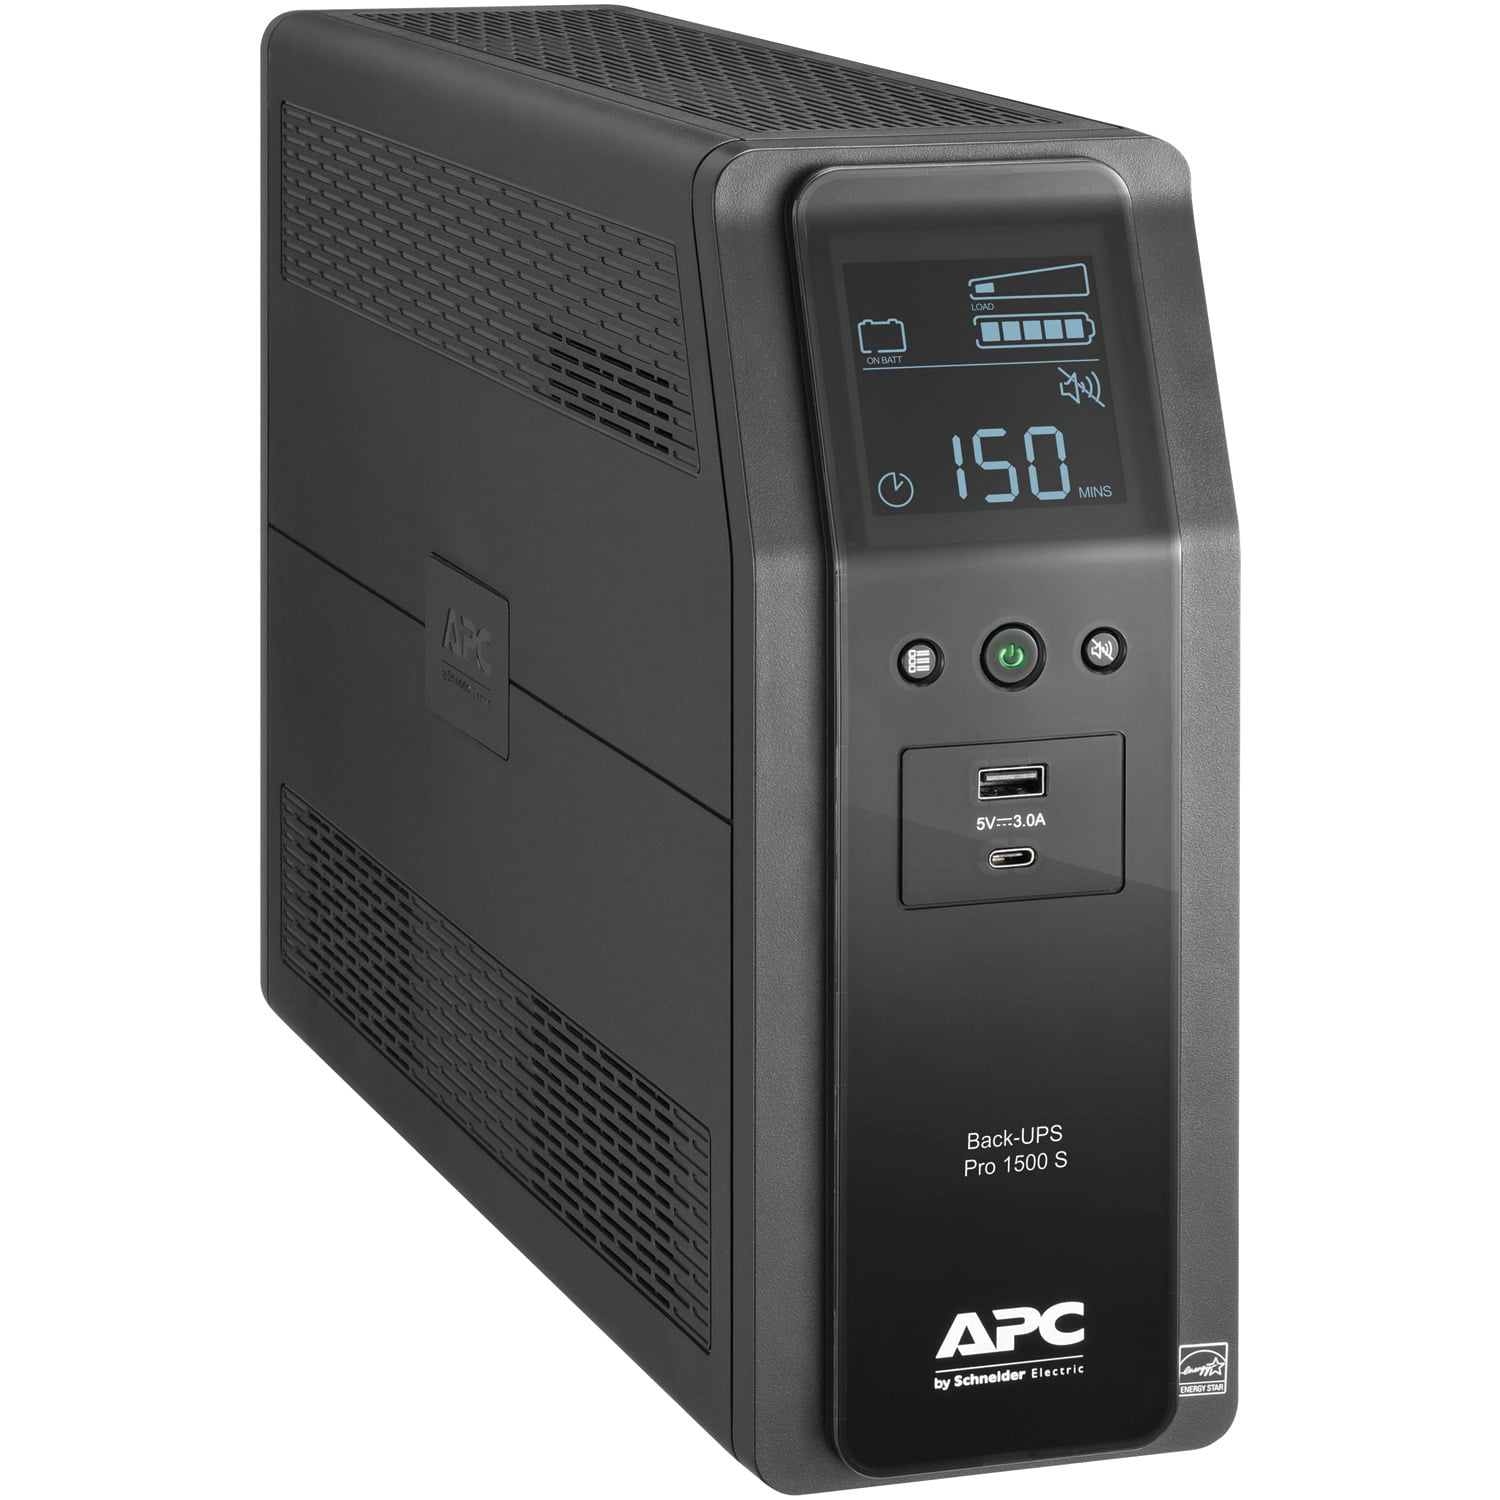 APC Sine Wave UPS Battery Backup & Surge Protector, 1500VA